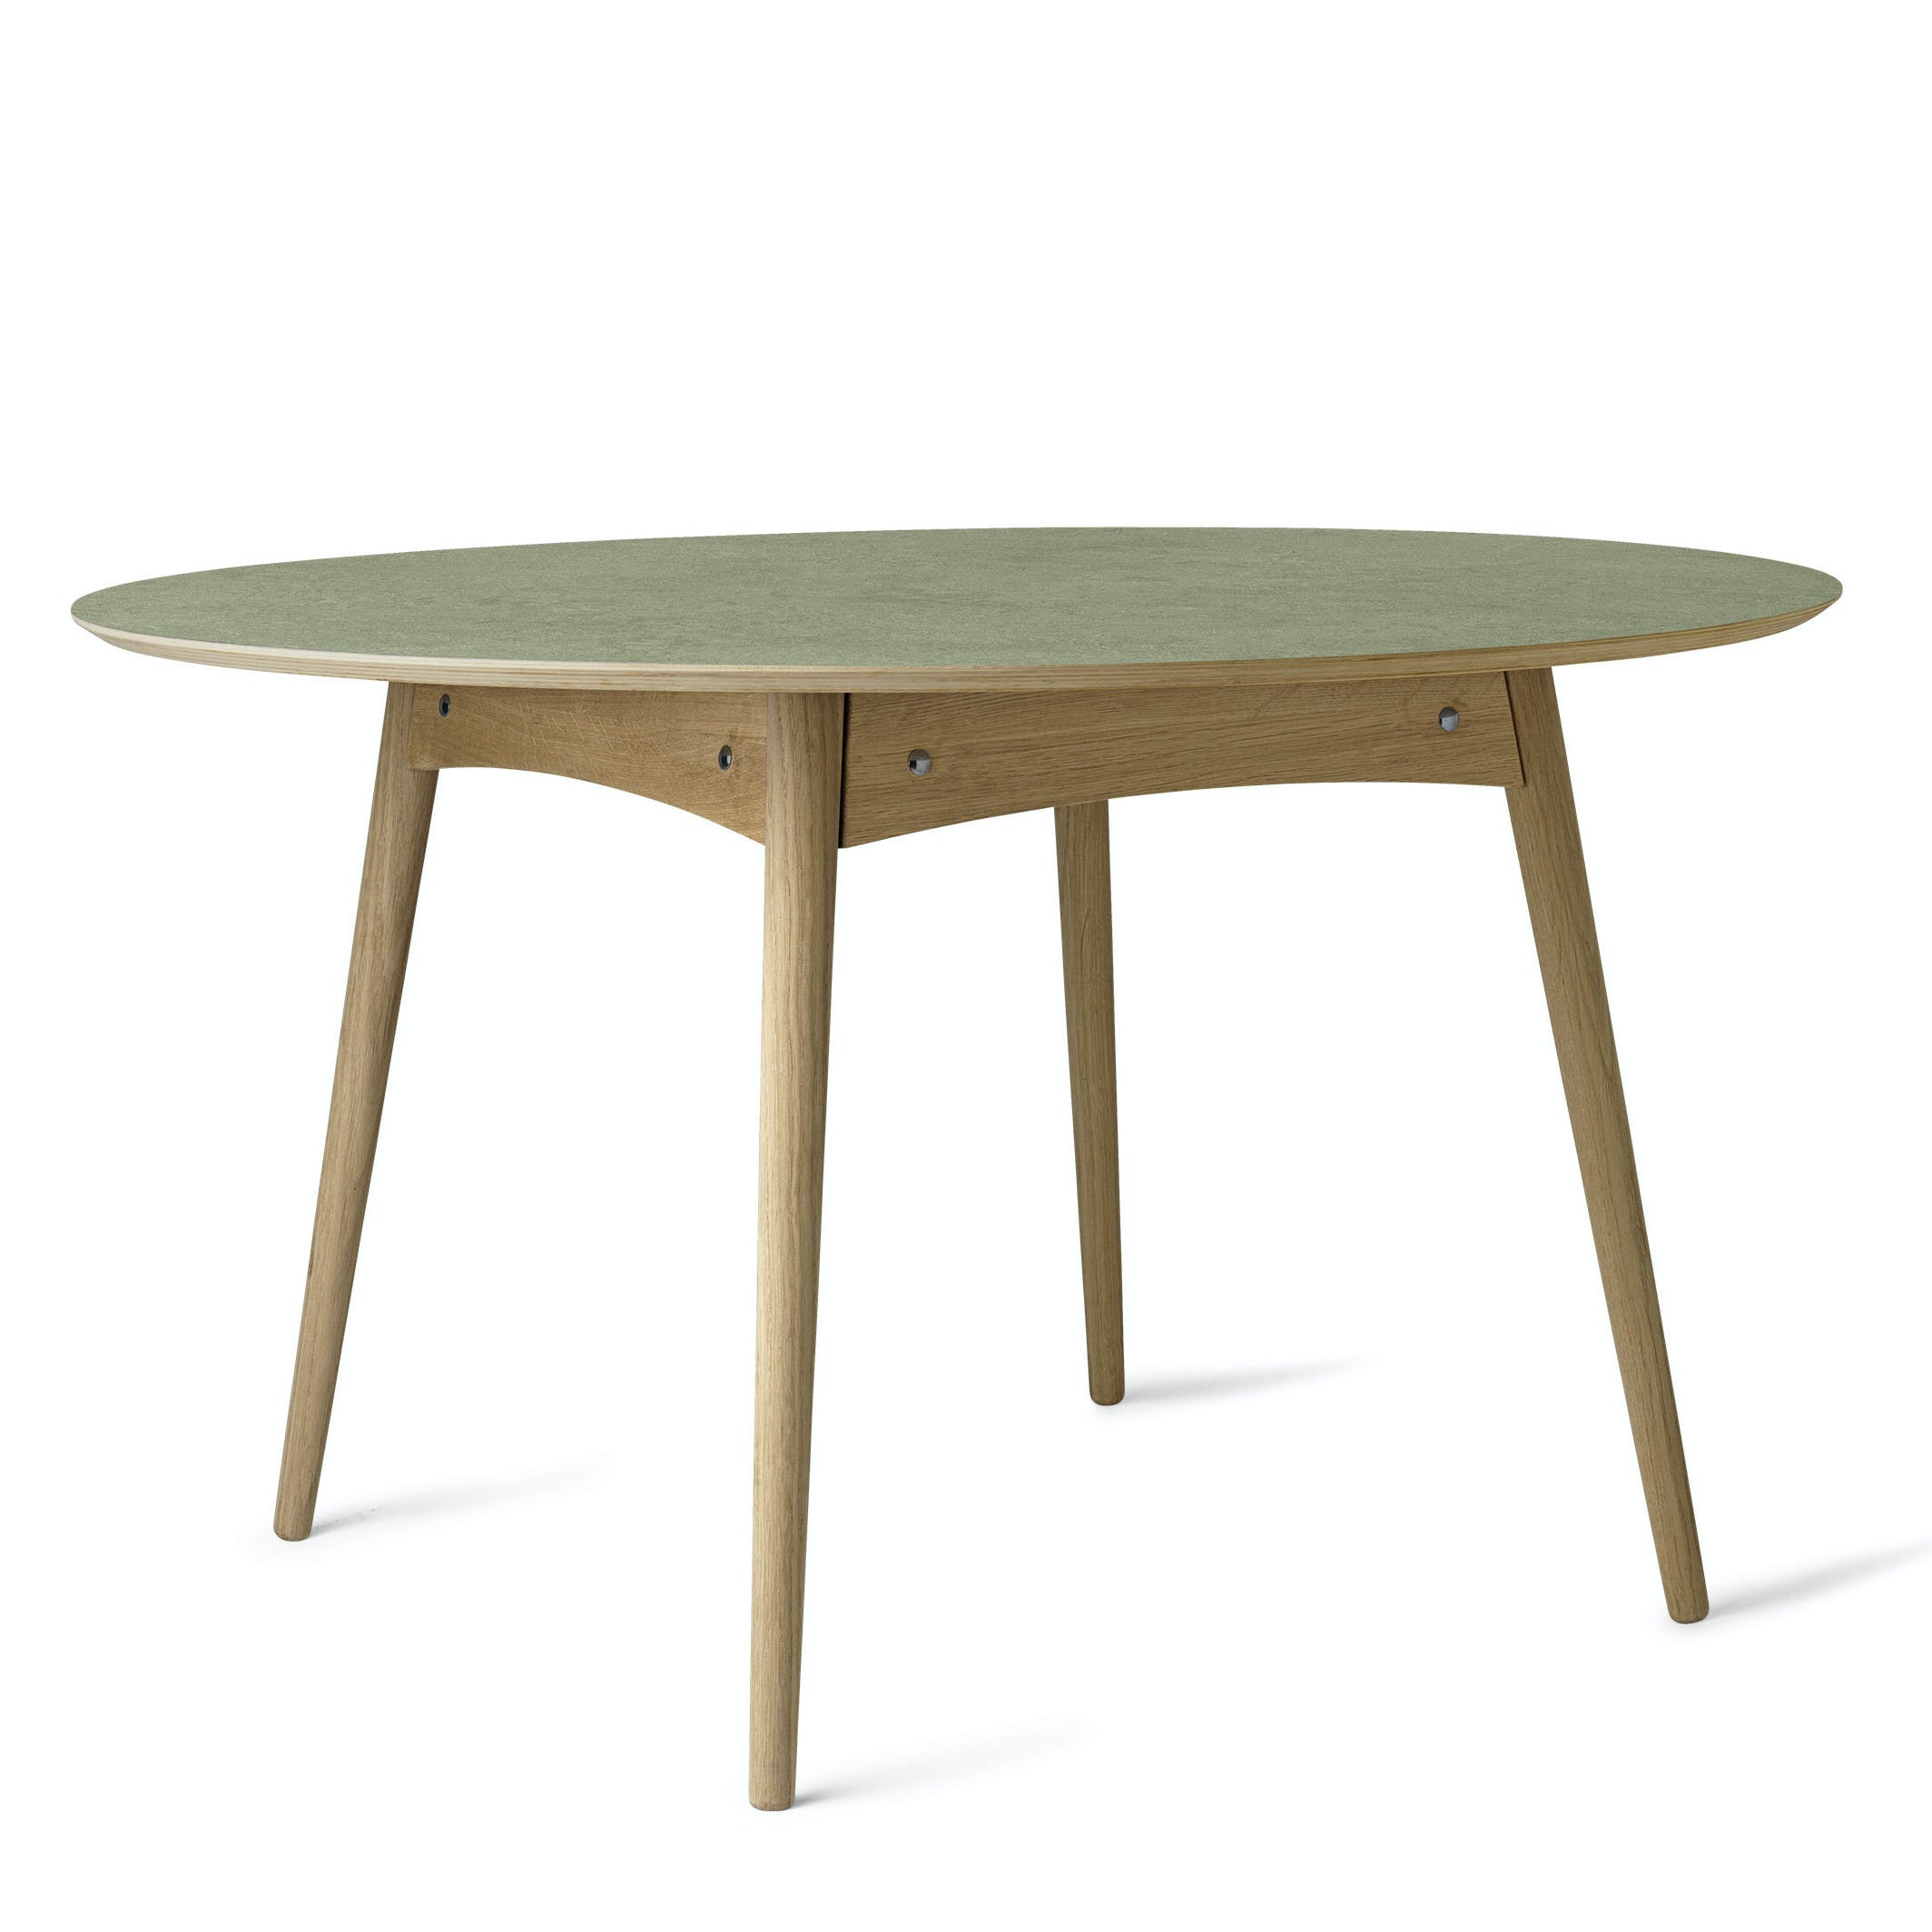 Mater Green Eat Dining Table Haute Living